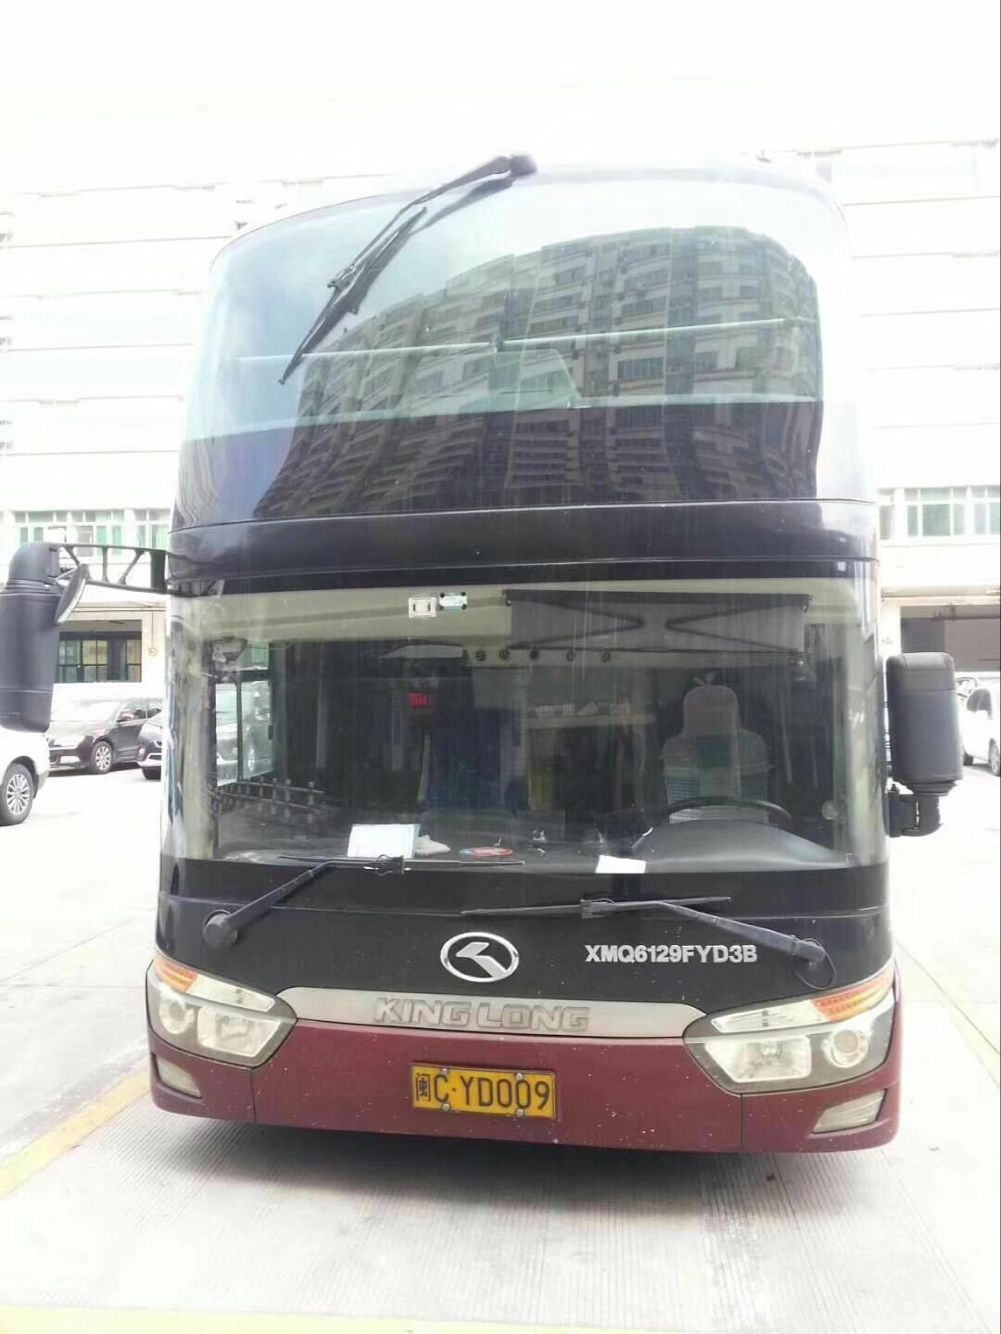 Big Second Hand Market Cooper Enterprise Used Kinglong Coach Bus For Sale with 50 SEATS India price